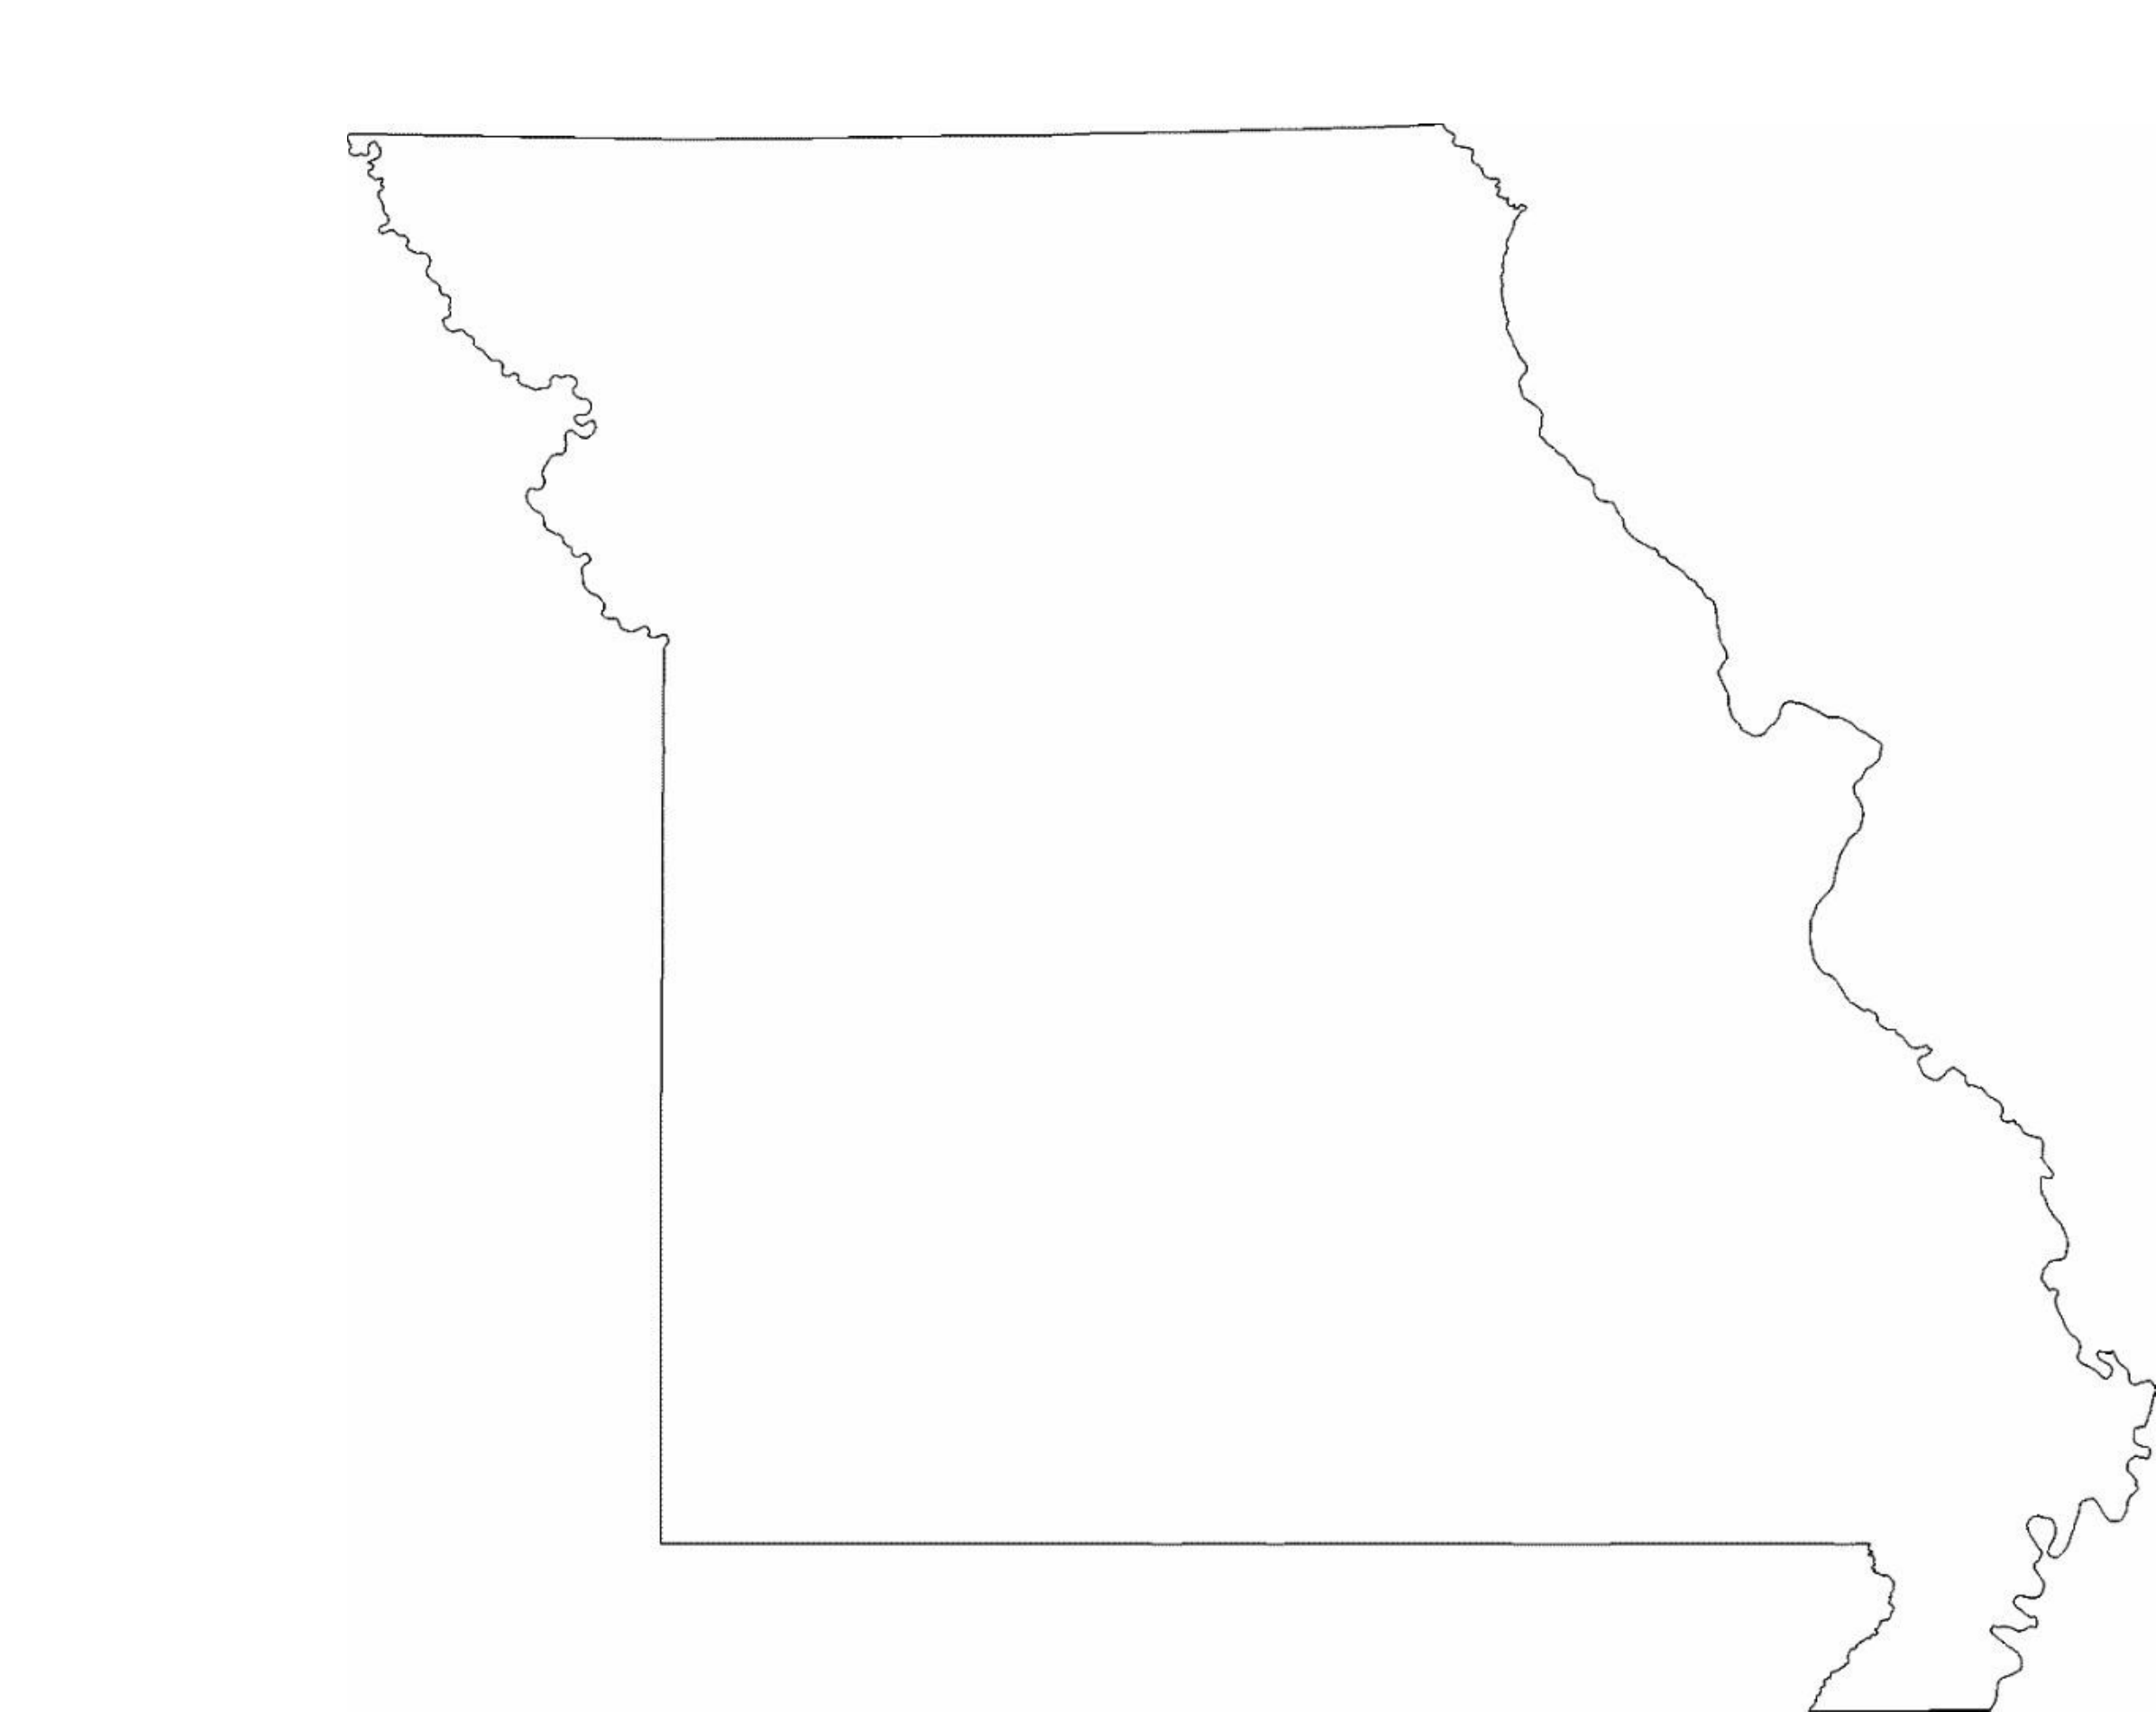 Missouri State Outline Map Free Download